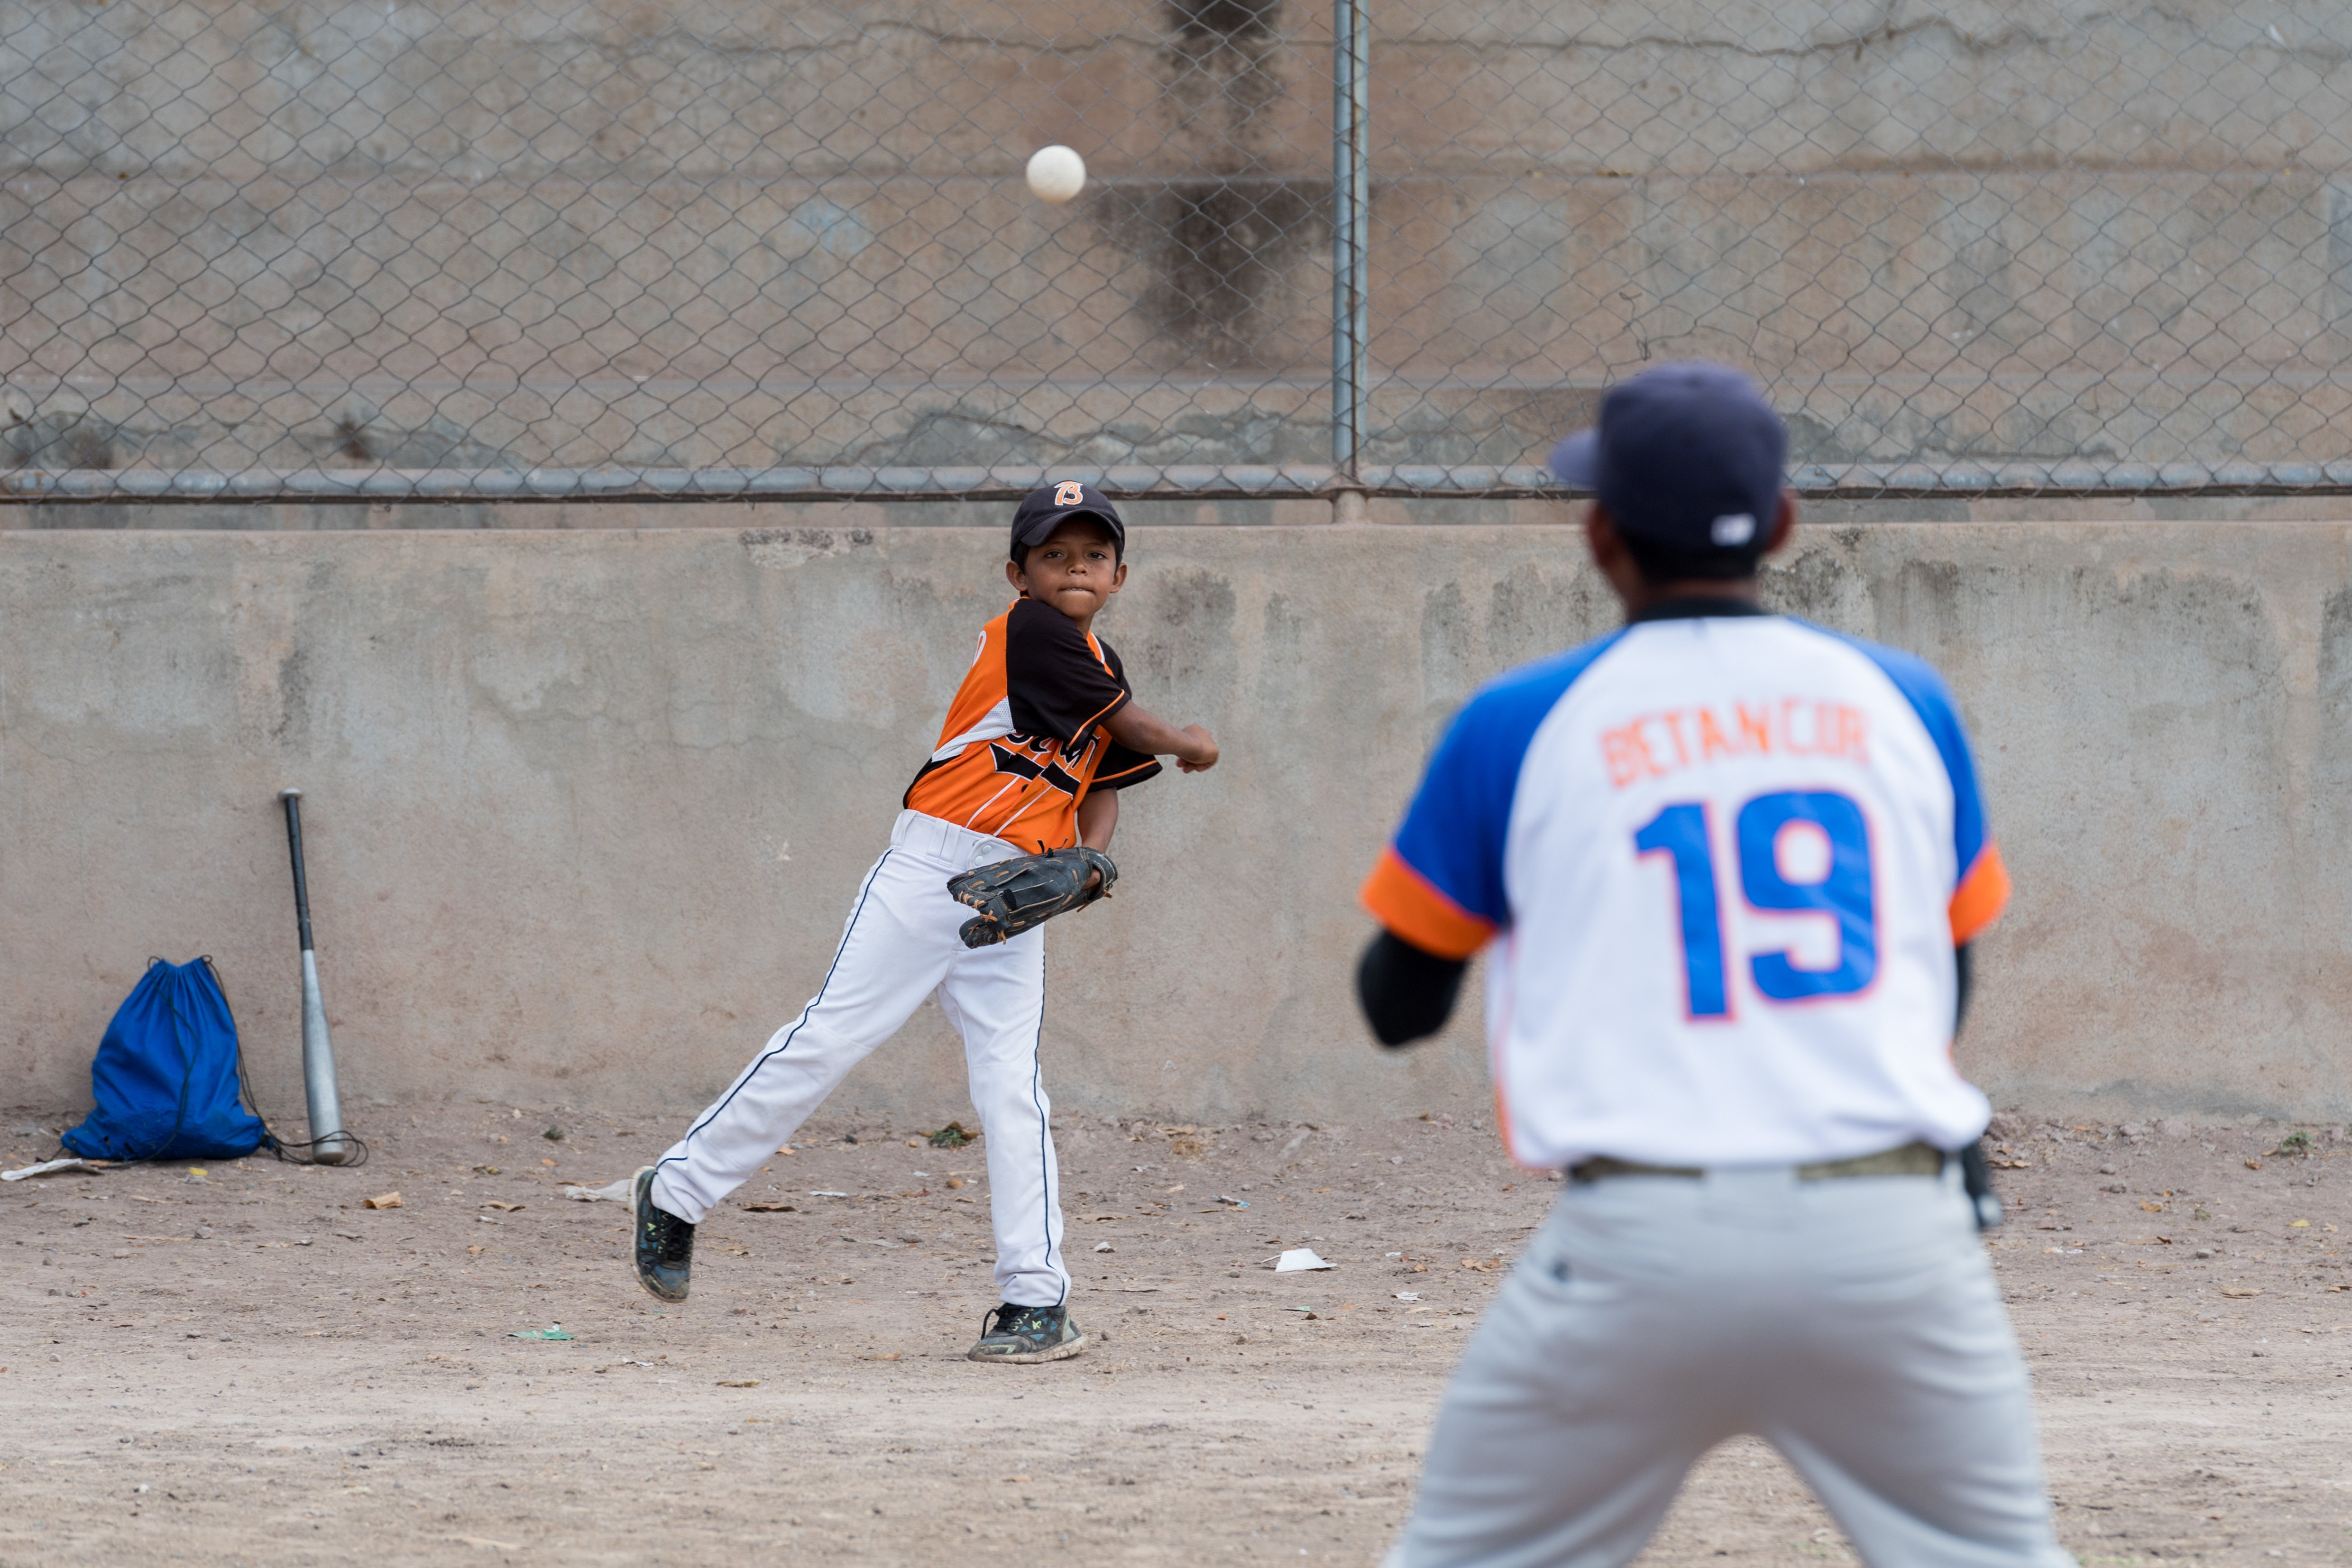 A boy in baseball gear is throwing a ball to his coach